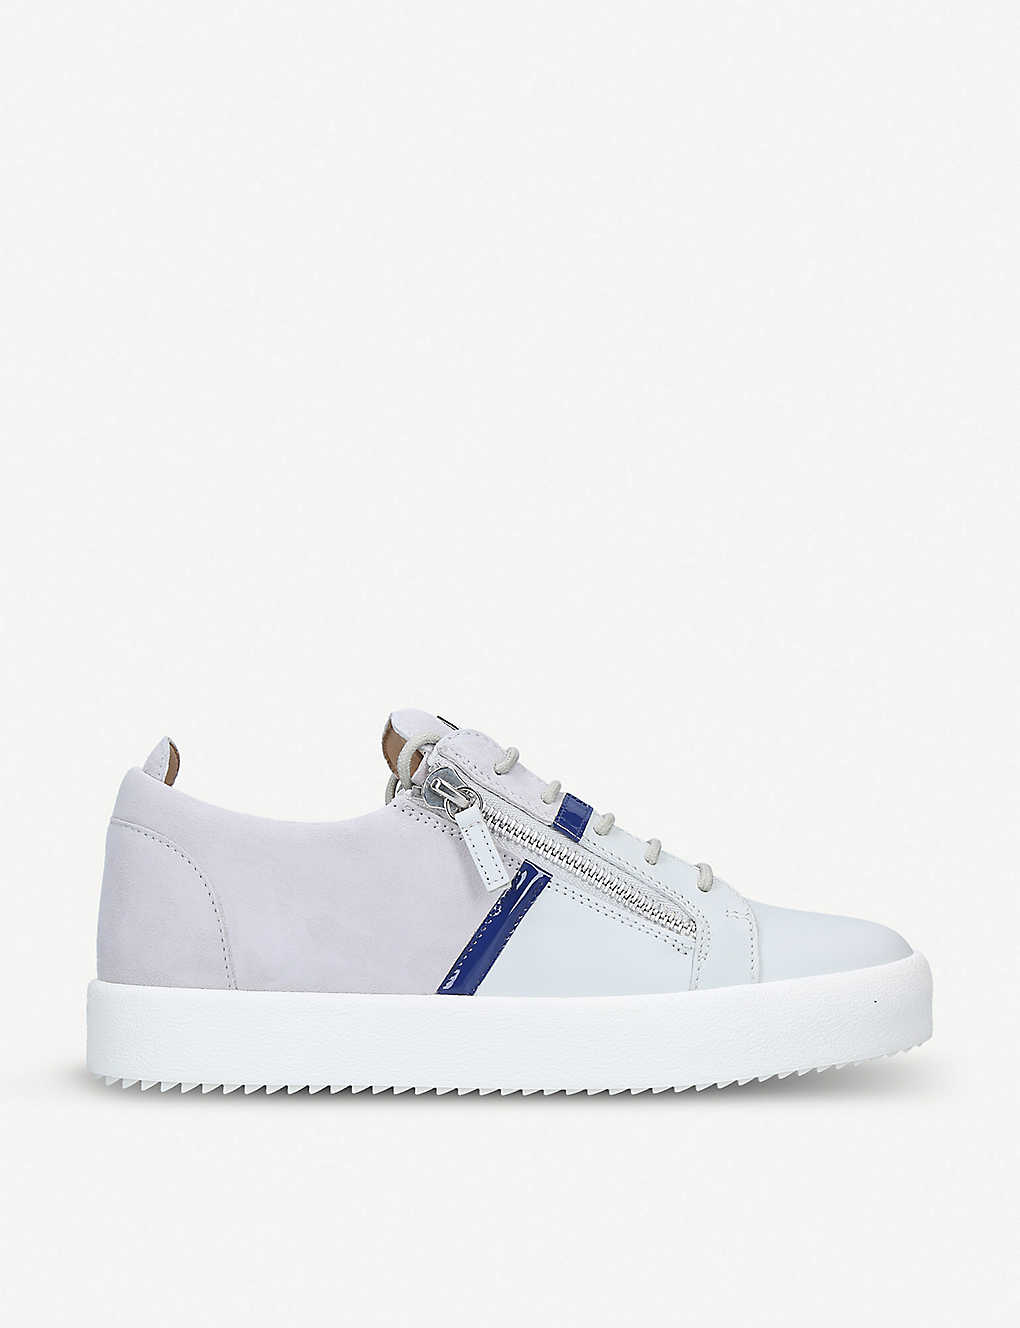 cfed9554c7a6 GIUSEPPE ZANOTTI - Two-tone leather and suede trainers